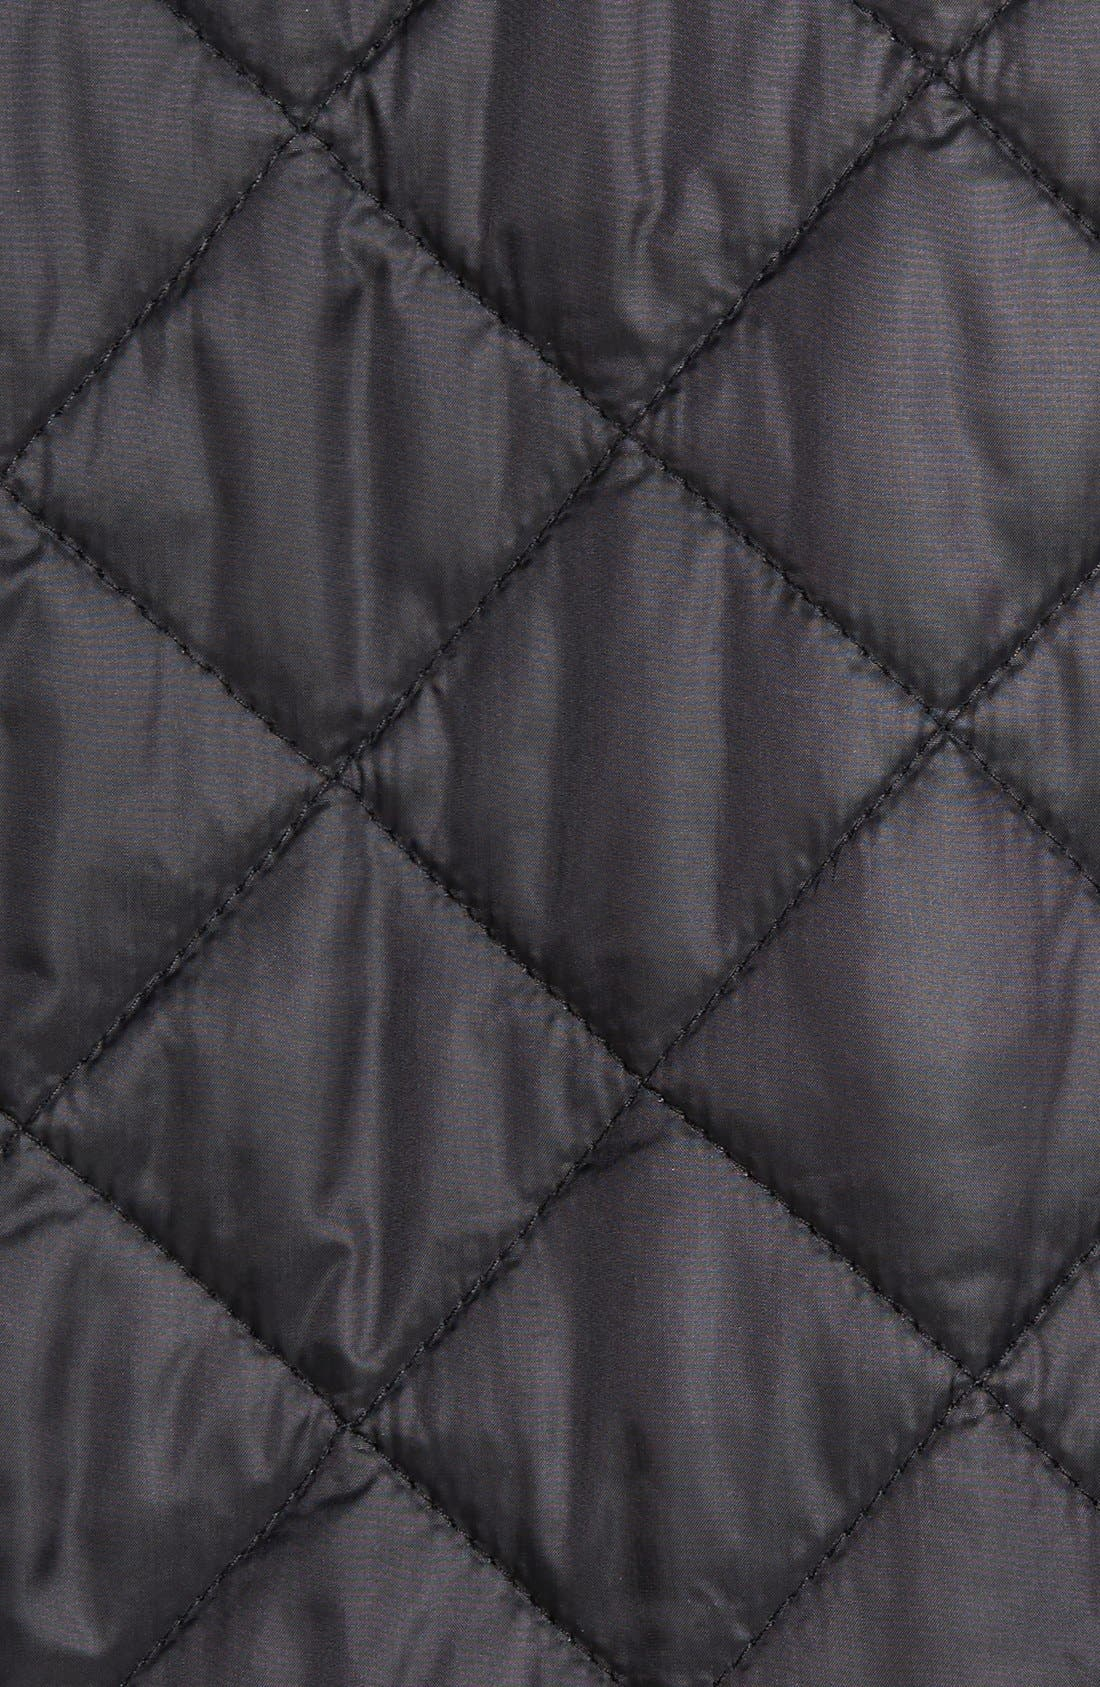 Diamond Quilted Jacket,                             Alternate thumbnail 7, color,                             Black